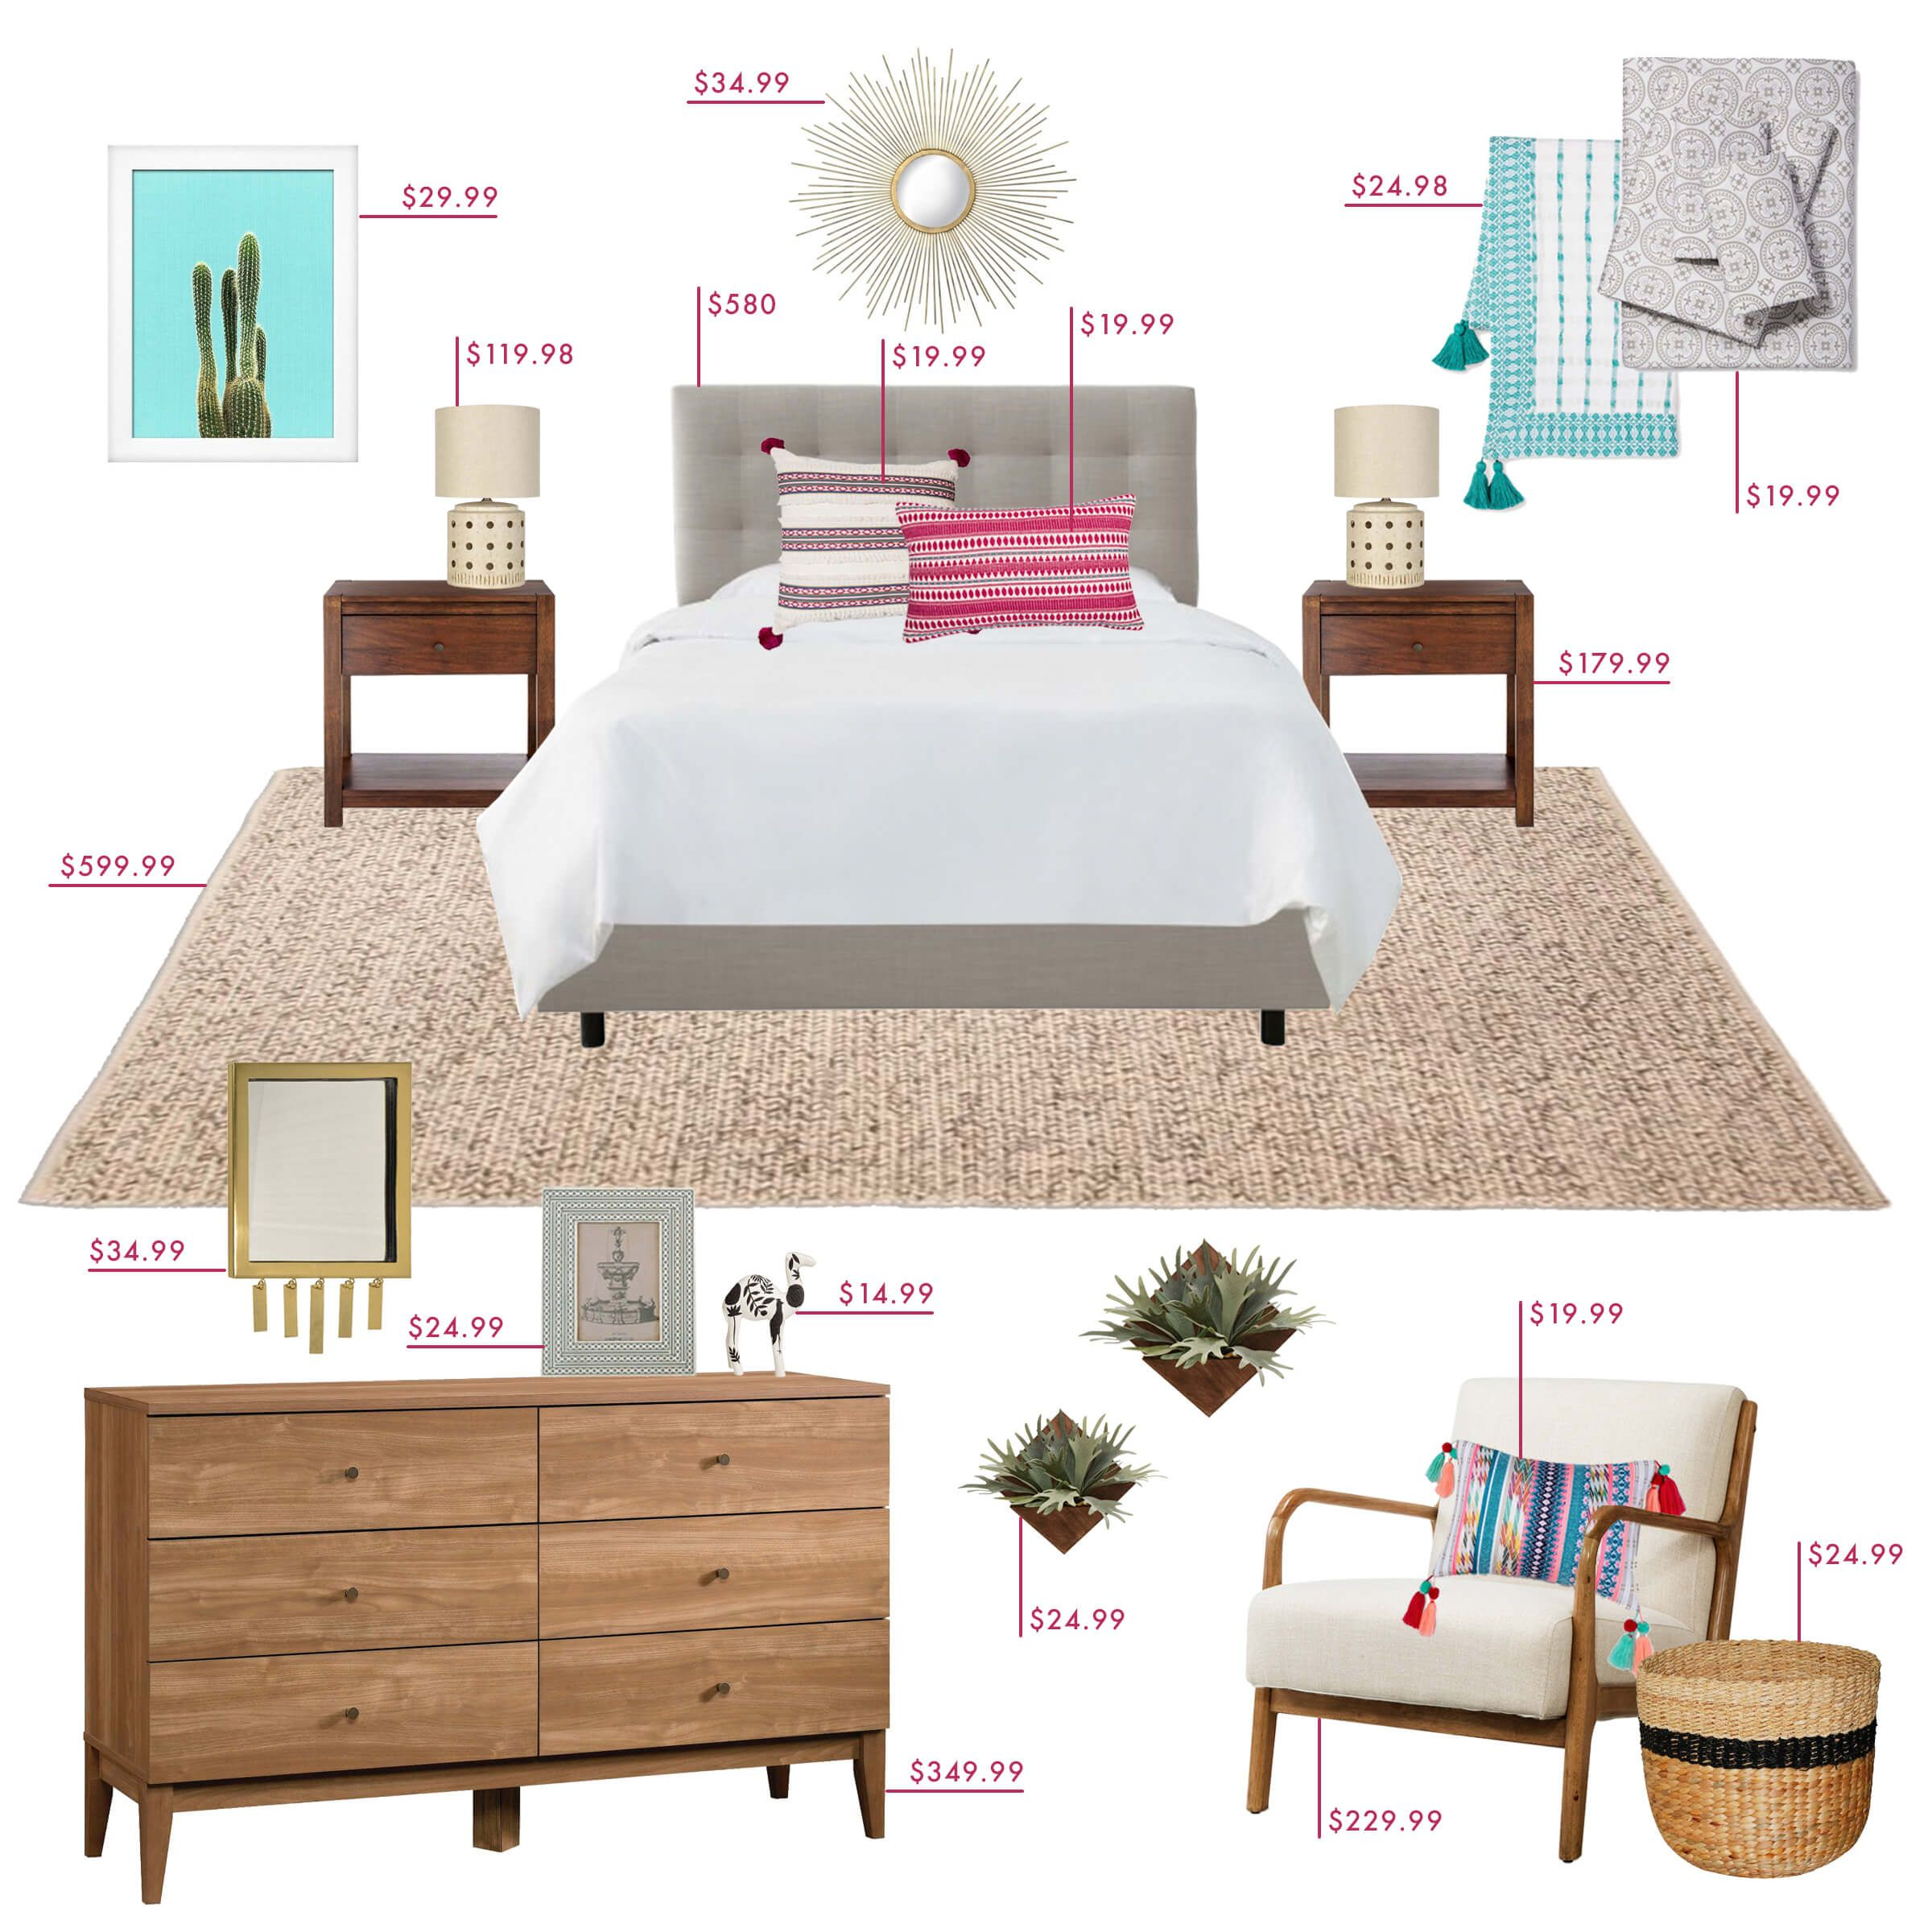 How To Refresh Your Bedroom On A Budget Emily Henderson Bedroom Styles Cheap Home Decor Simple Bedroom